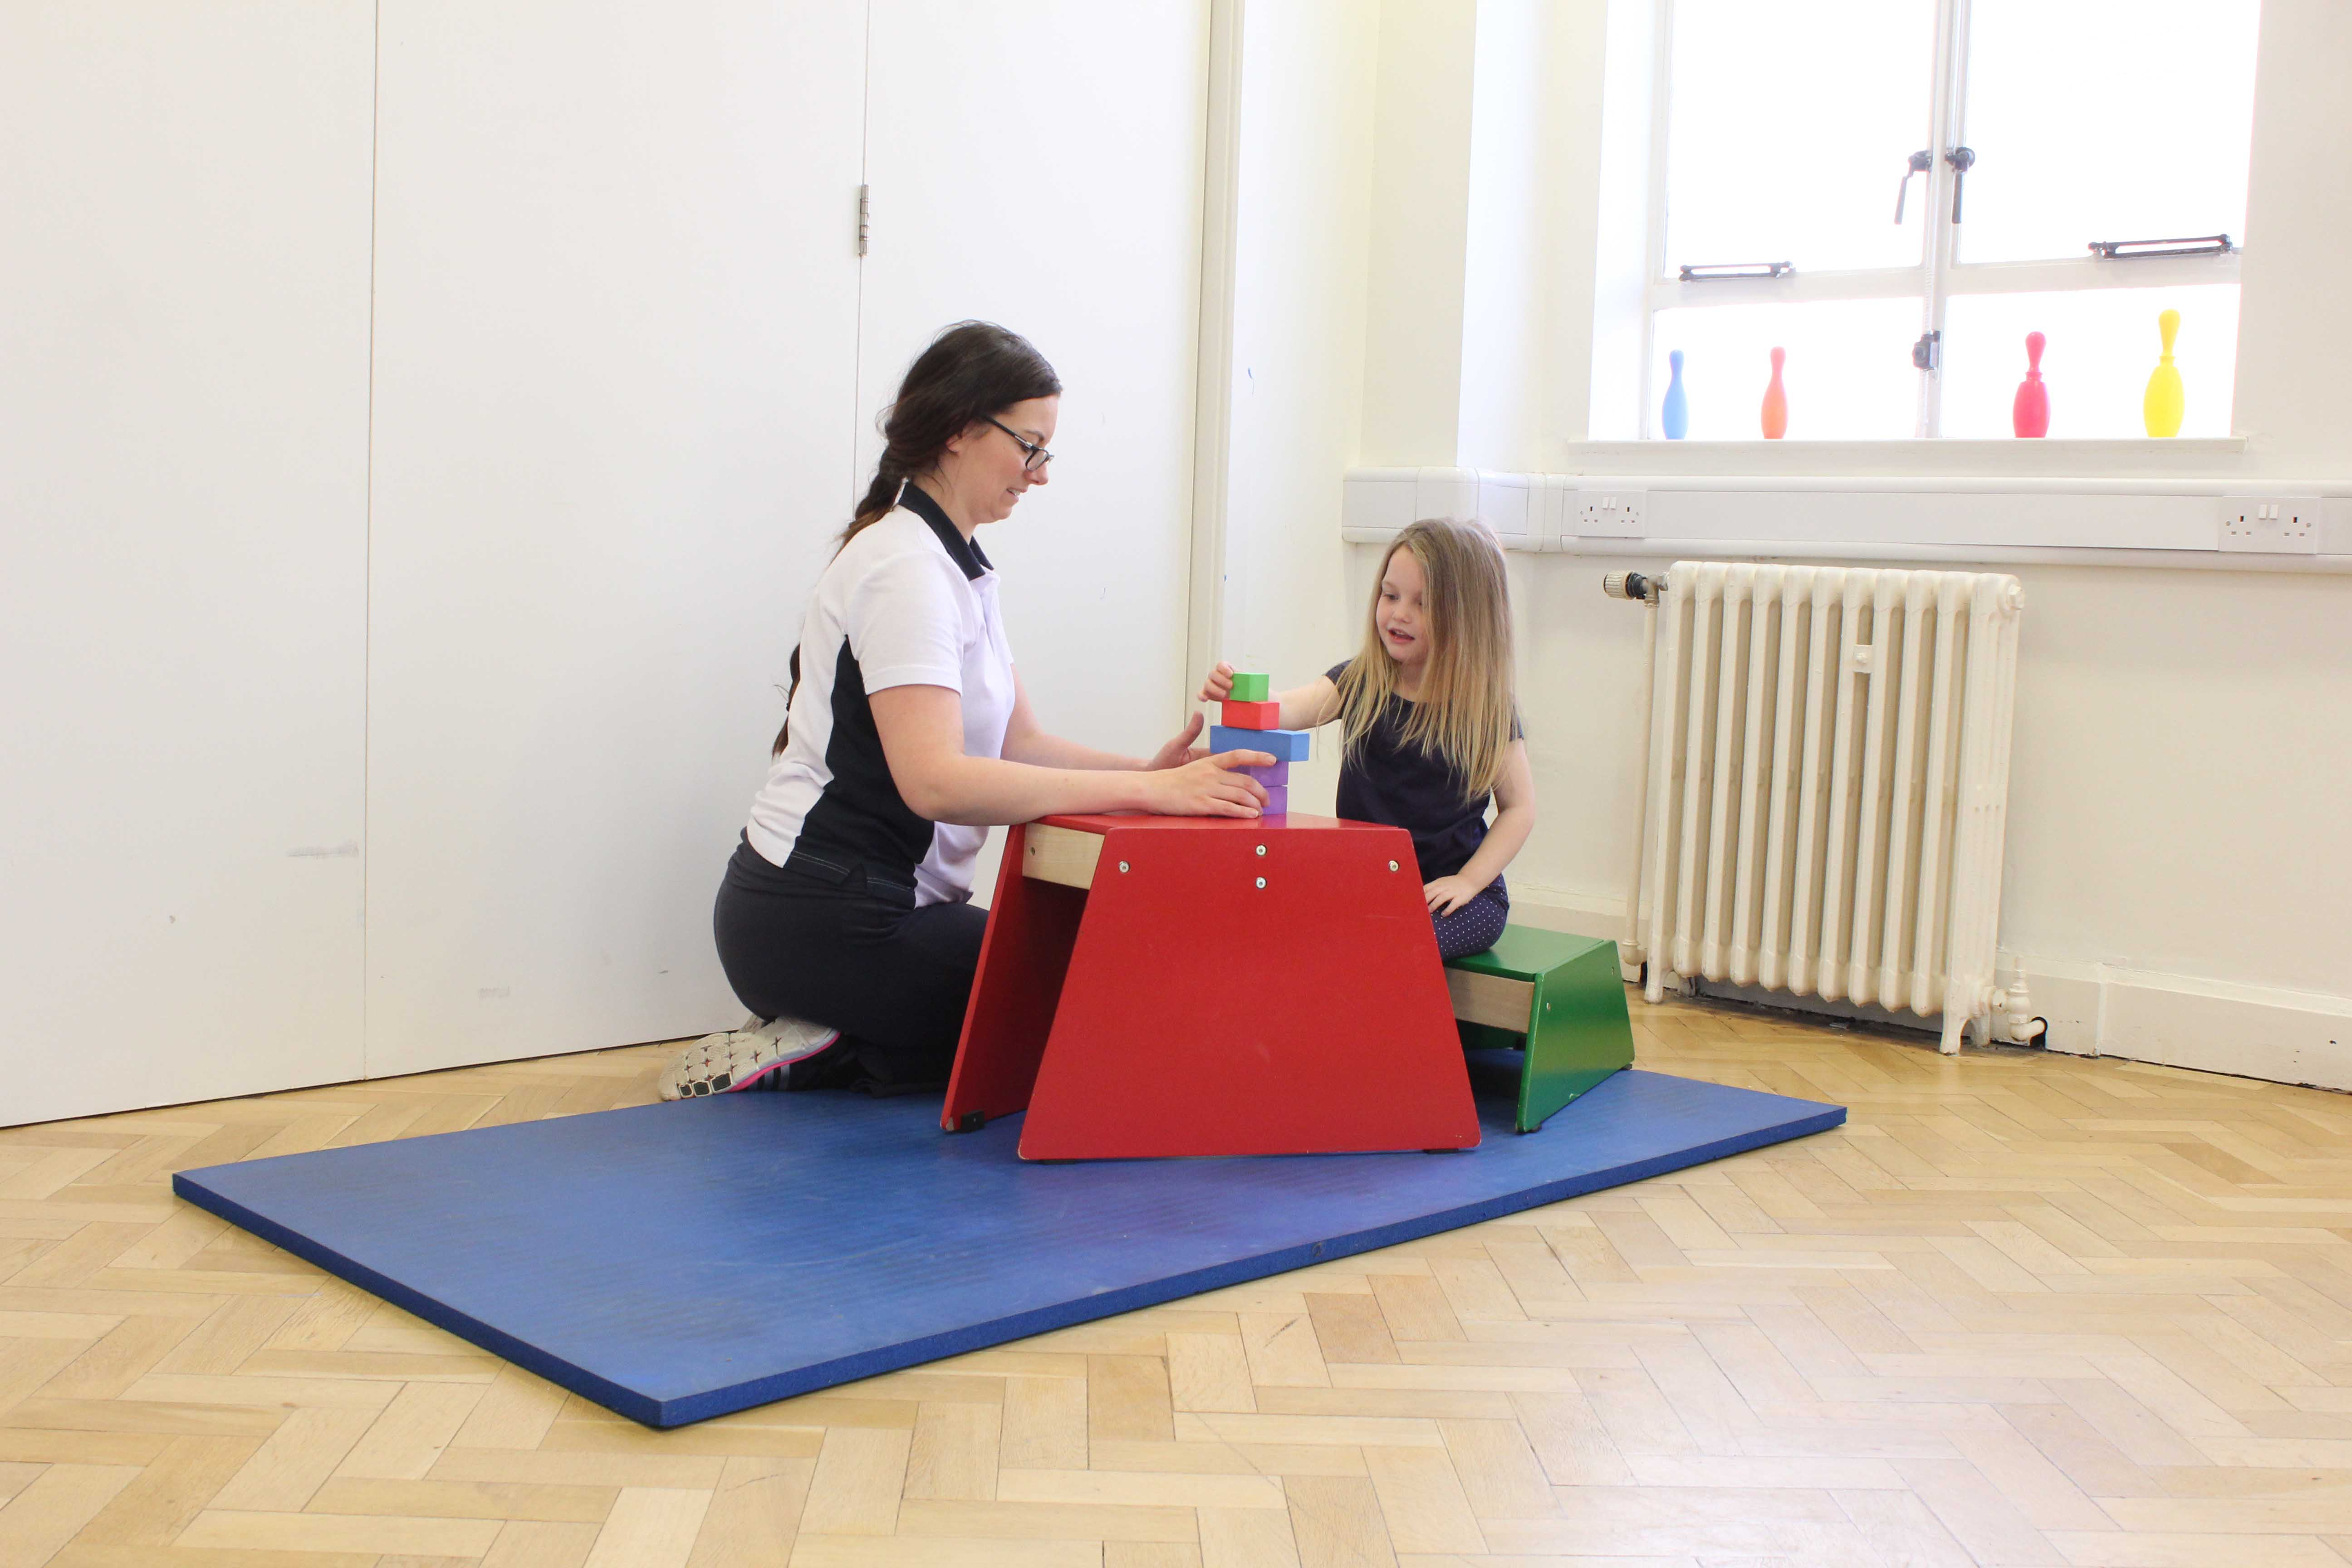 Fine motor skill rehabilitation for the upper limb assisted by a specialist paediatric physiotherapist